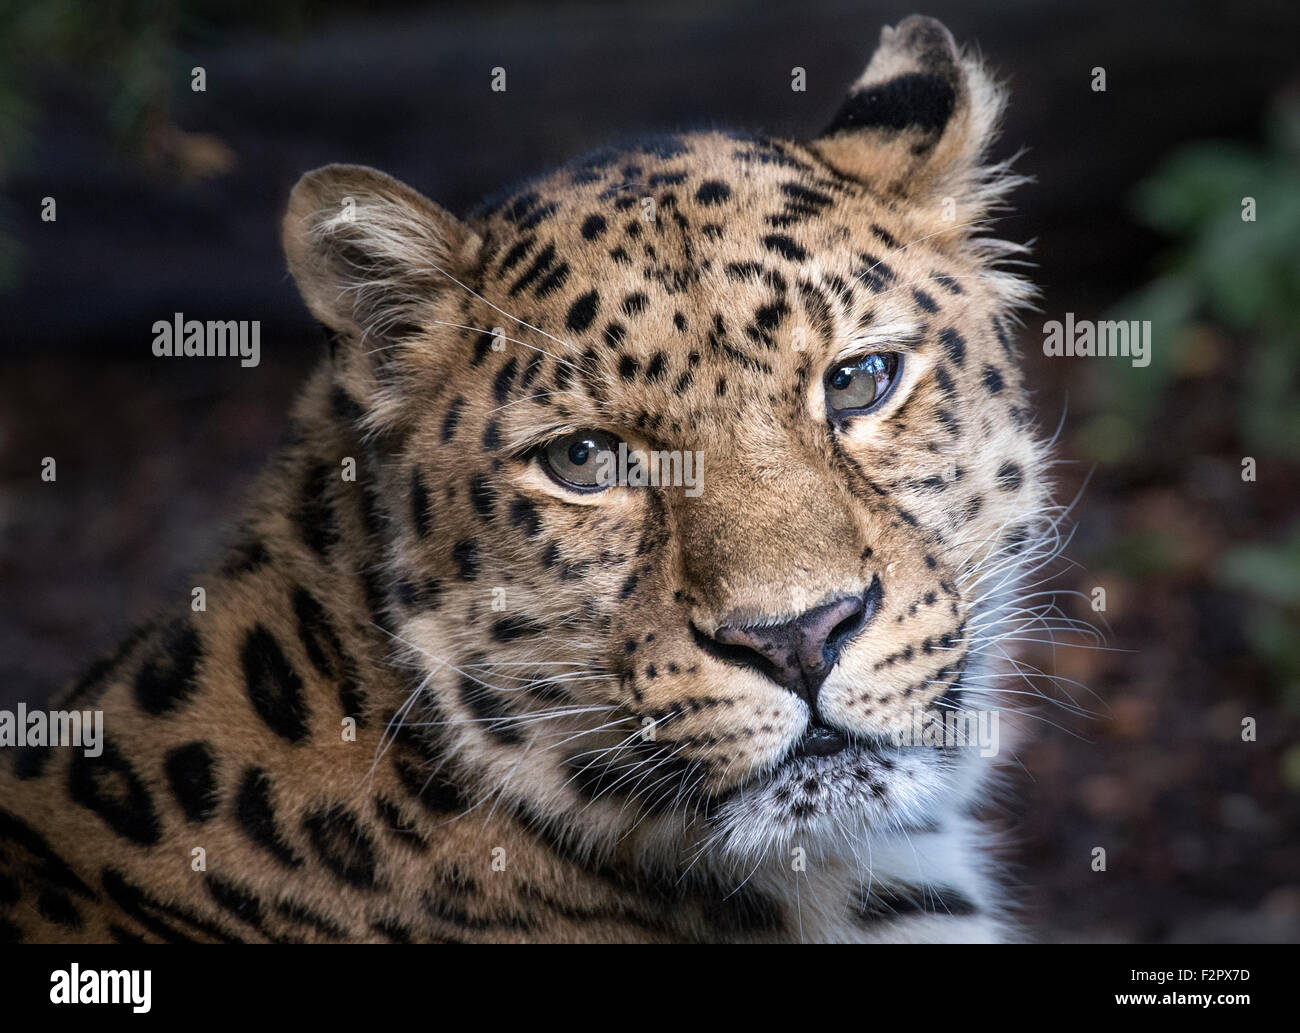 Male Amur leopard gazing towards camera (face shot) - Stock Image